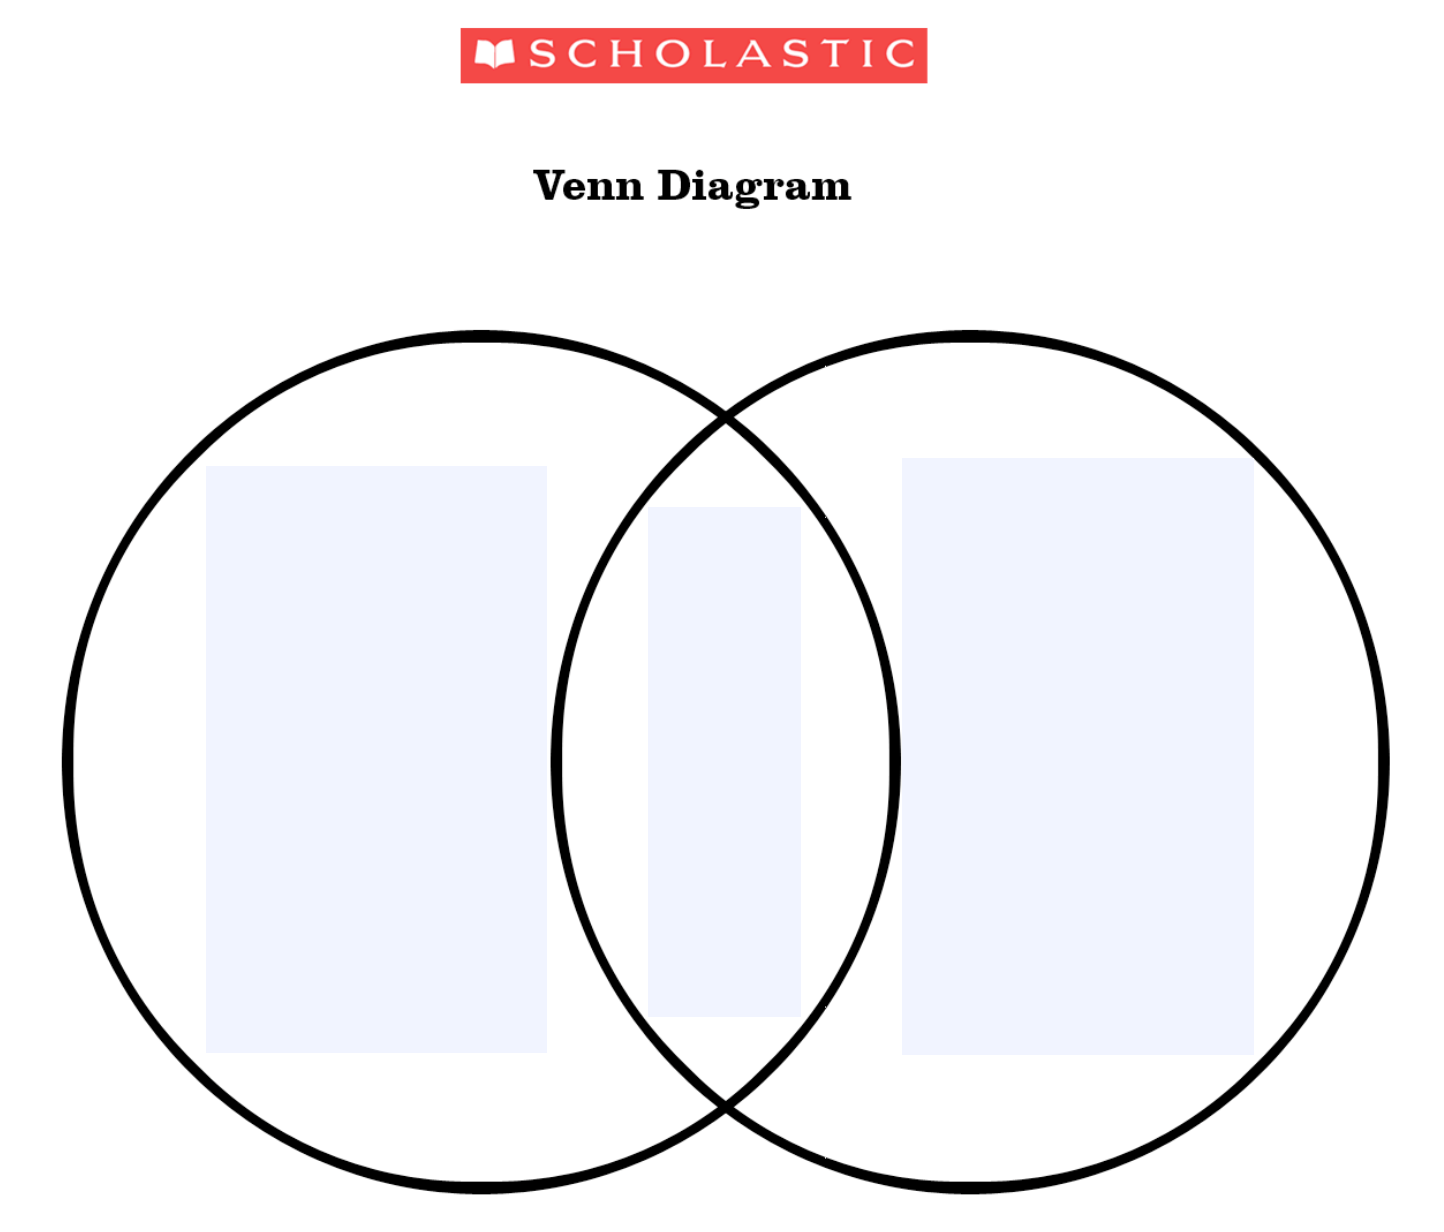 Venn Diagram Of Cell Organelle